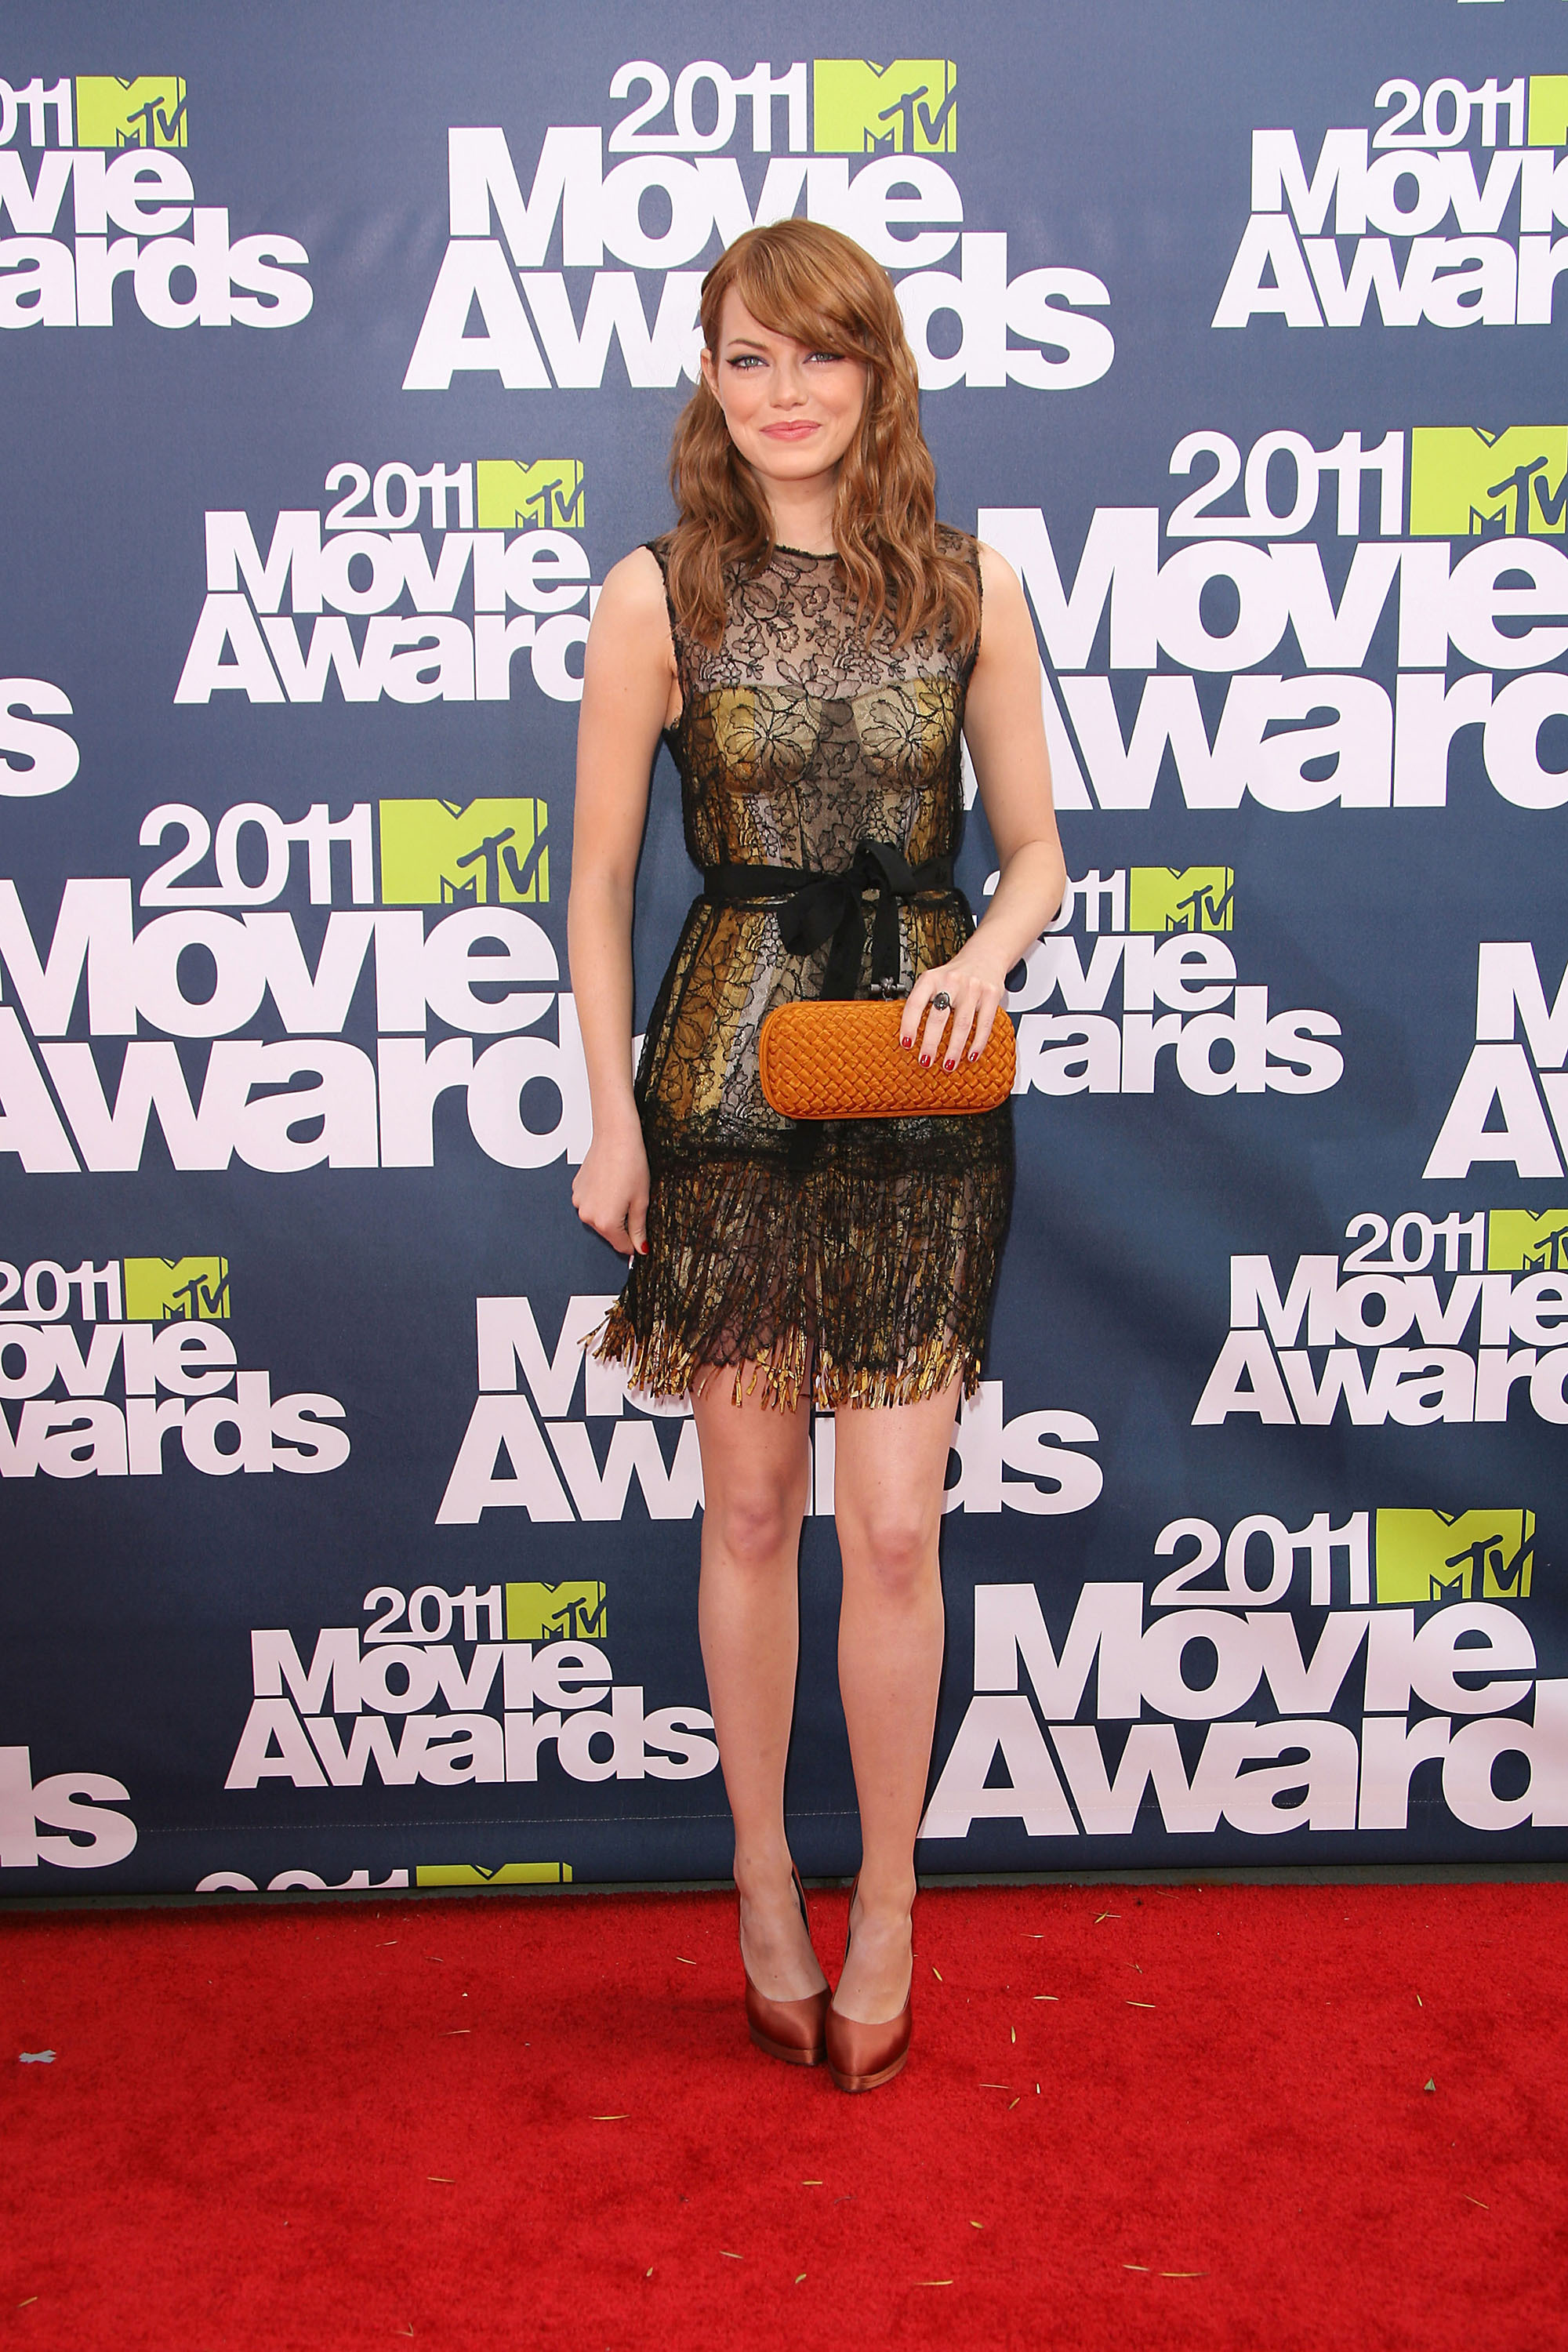 Emma Stone celebrity style: 2011 MTV Movie Awards